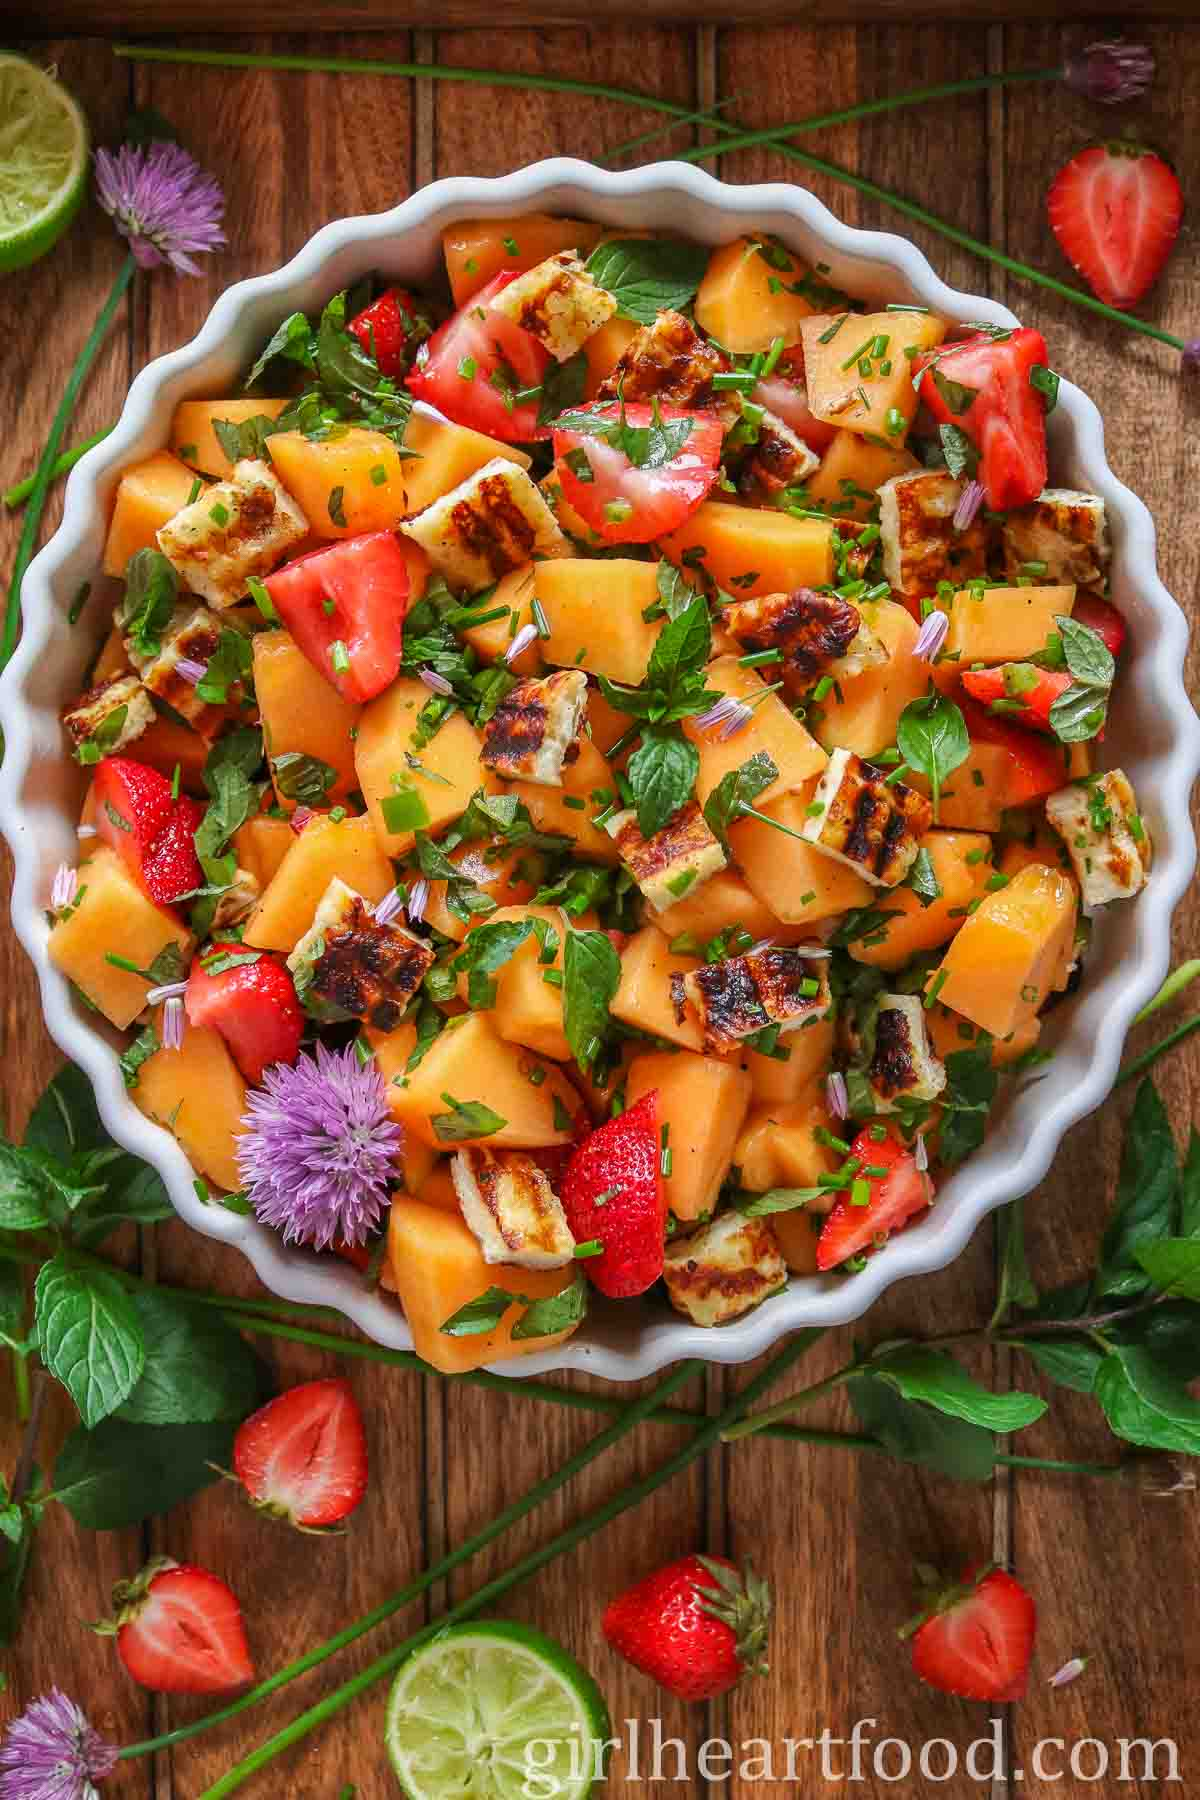 Overhead shot of a white round dish of cantaloupe salad garnished with mint and chives.